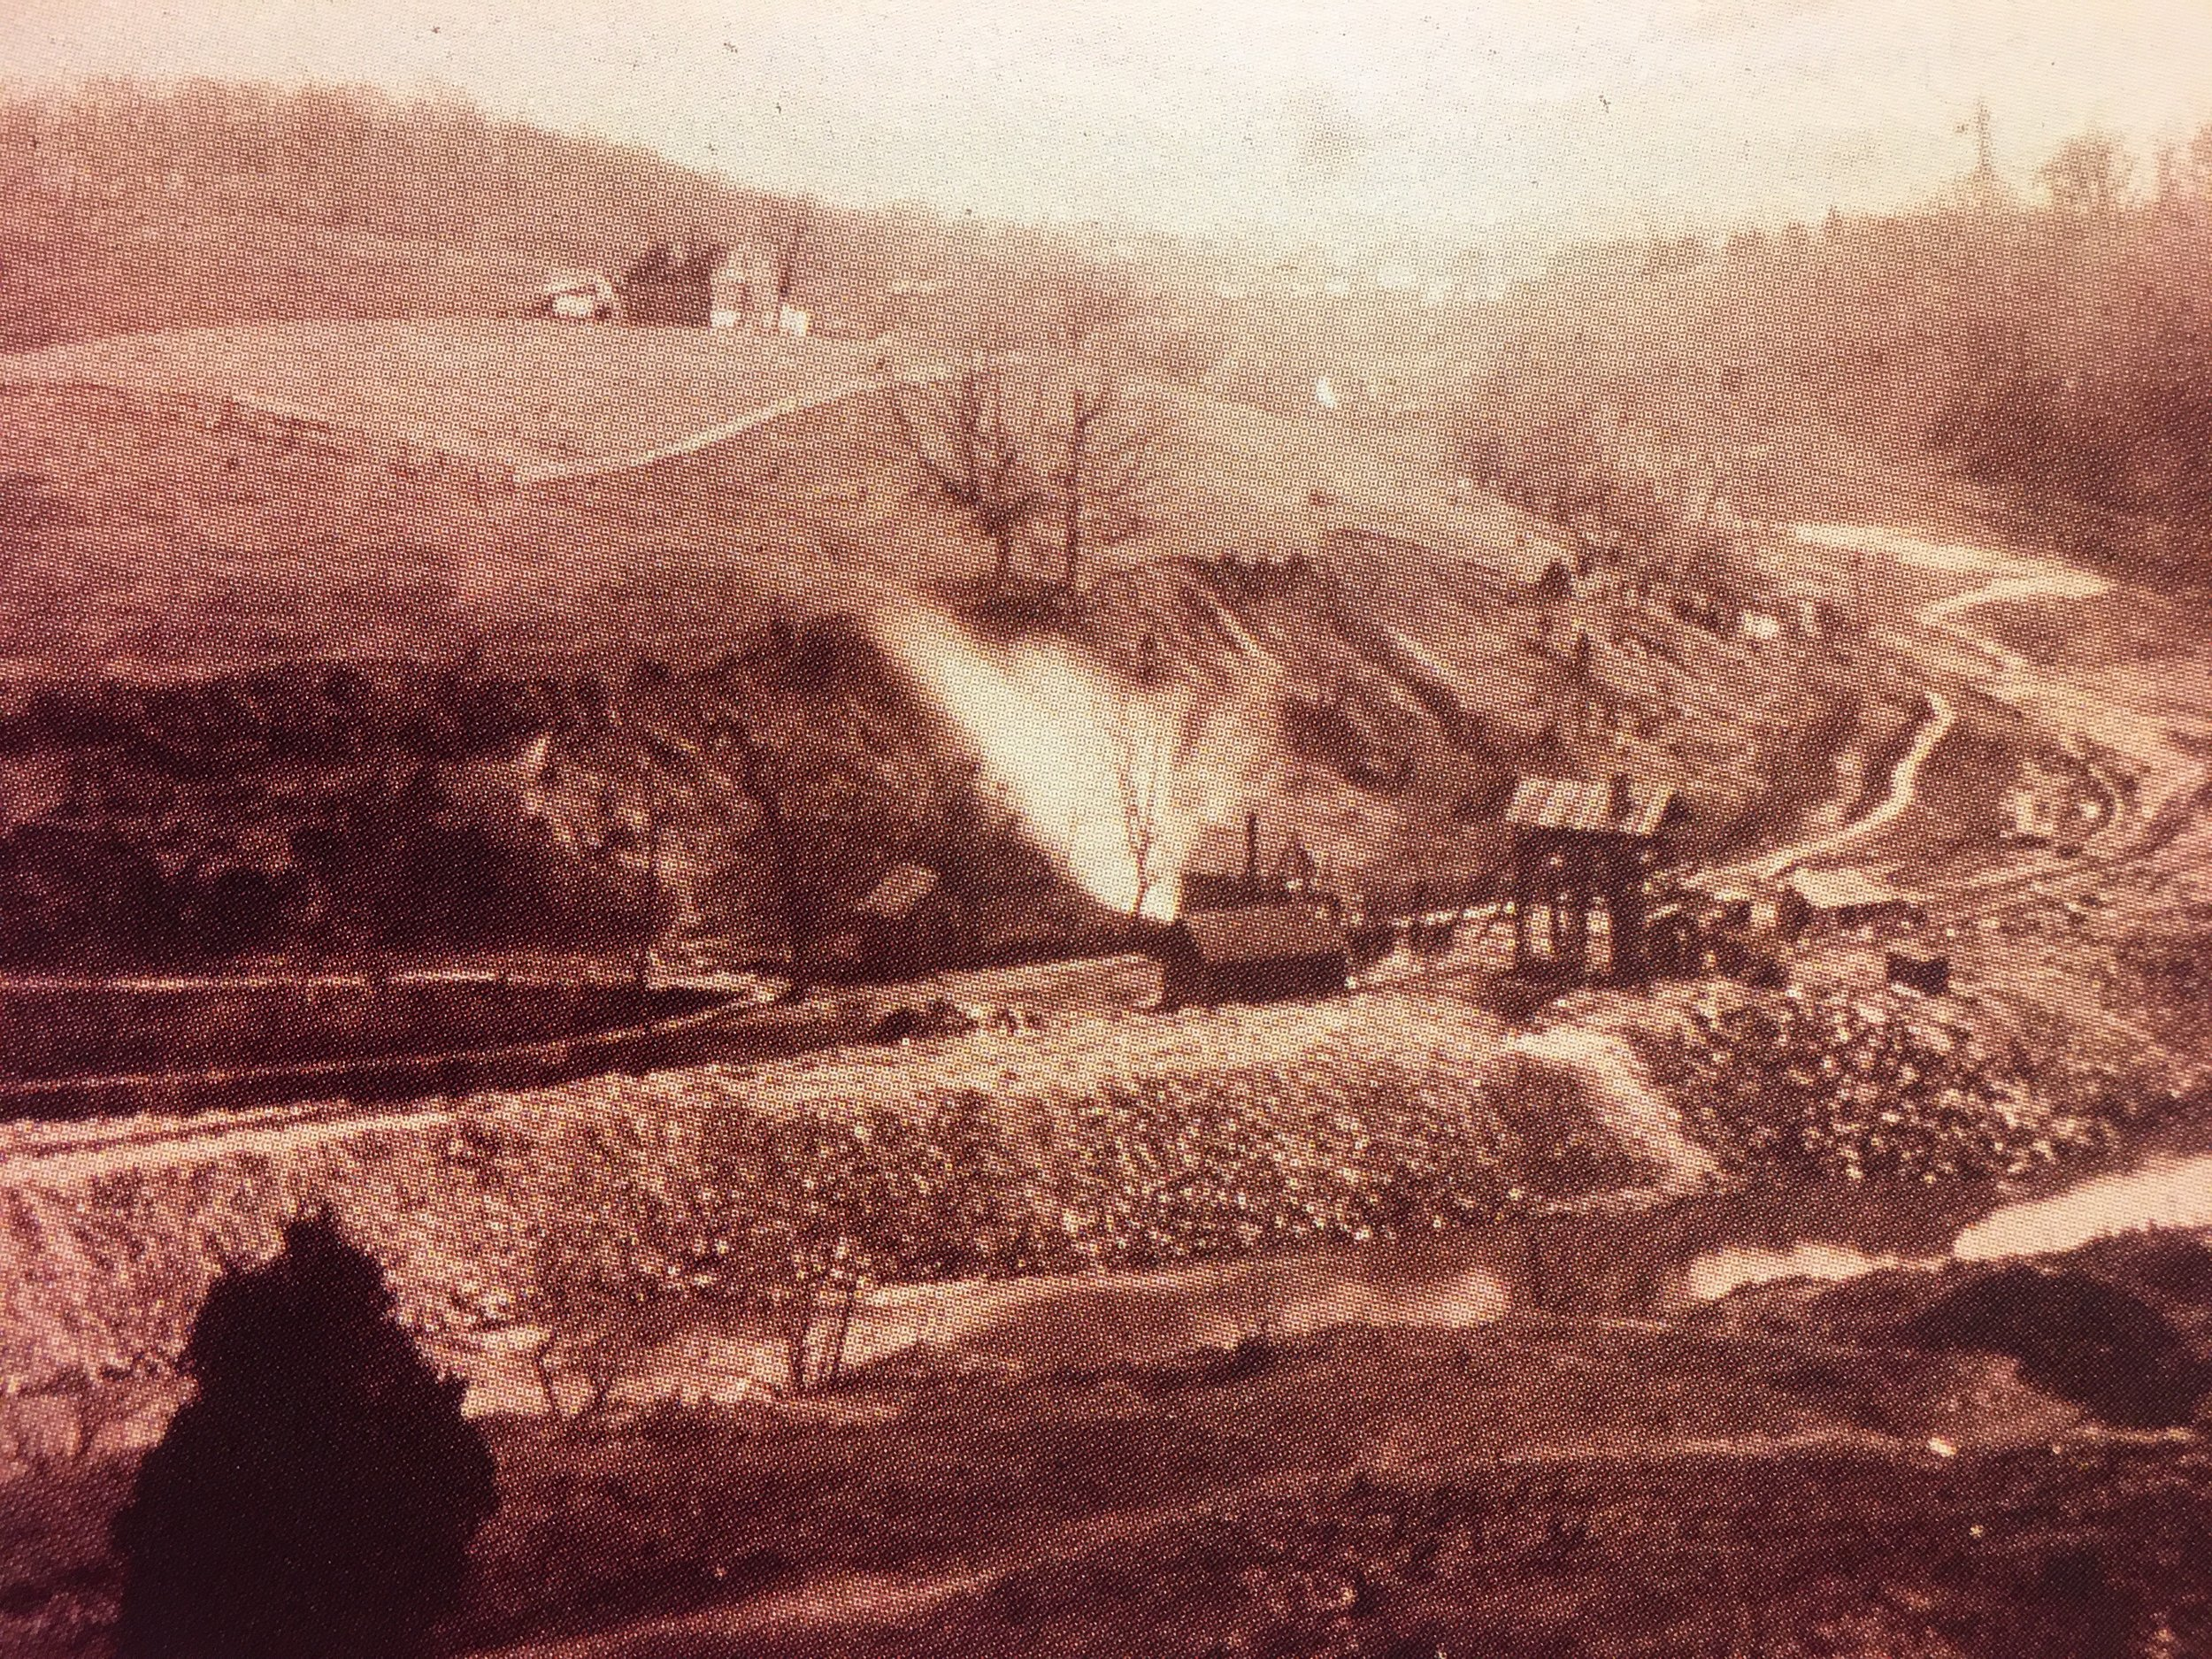 Smoke and dust rises from the Rock Creek shaft after blasting. Photo:  Army Corps of Engineers /Public Domain